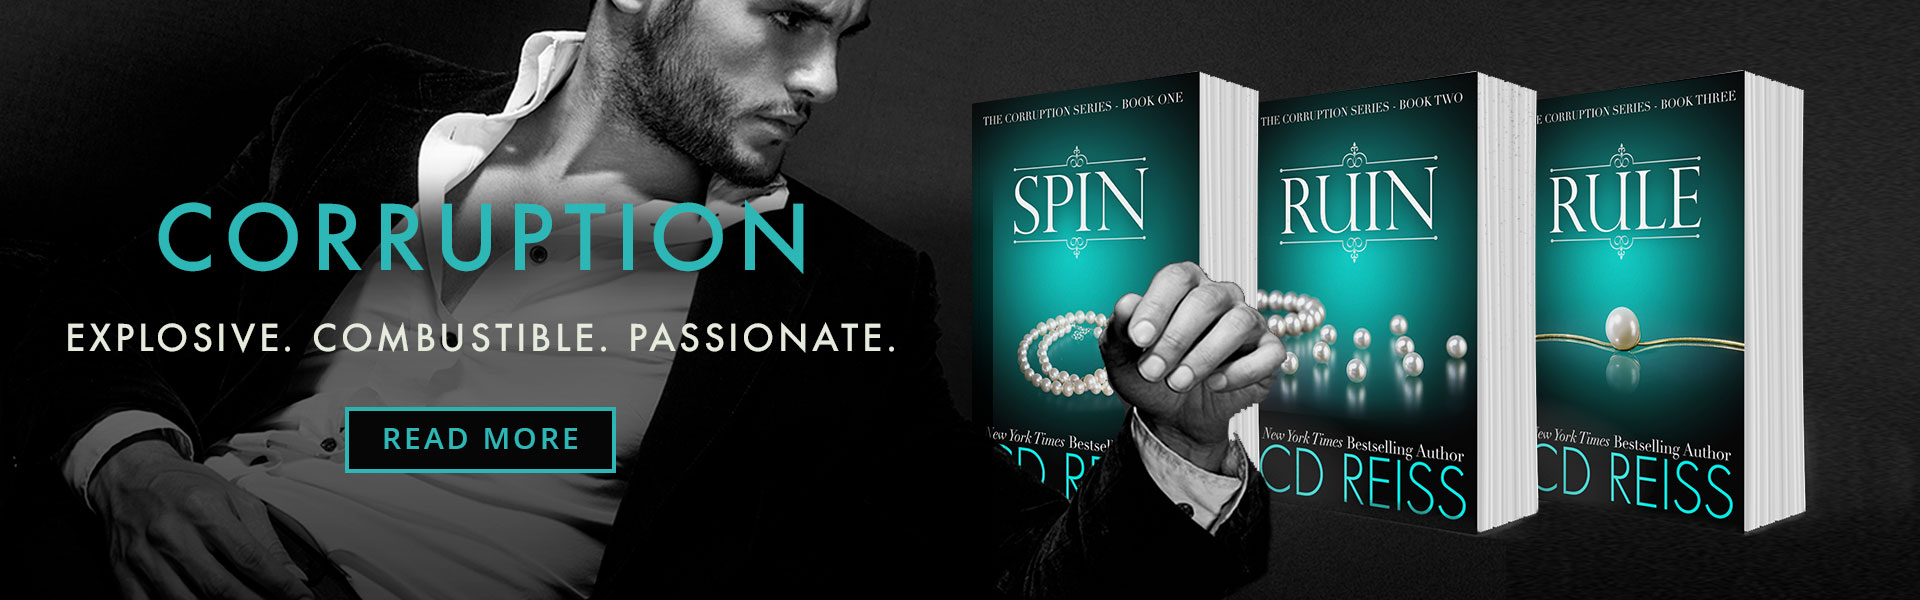 Spin, Ruin, Rule – Corruption by New York Times bestselling author CD Reiss